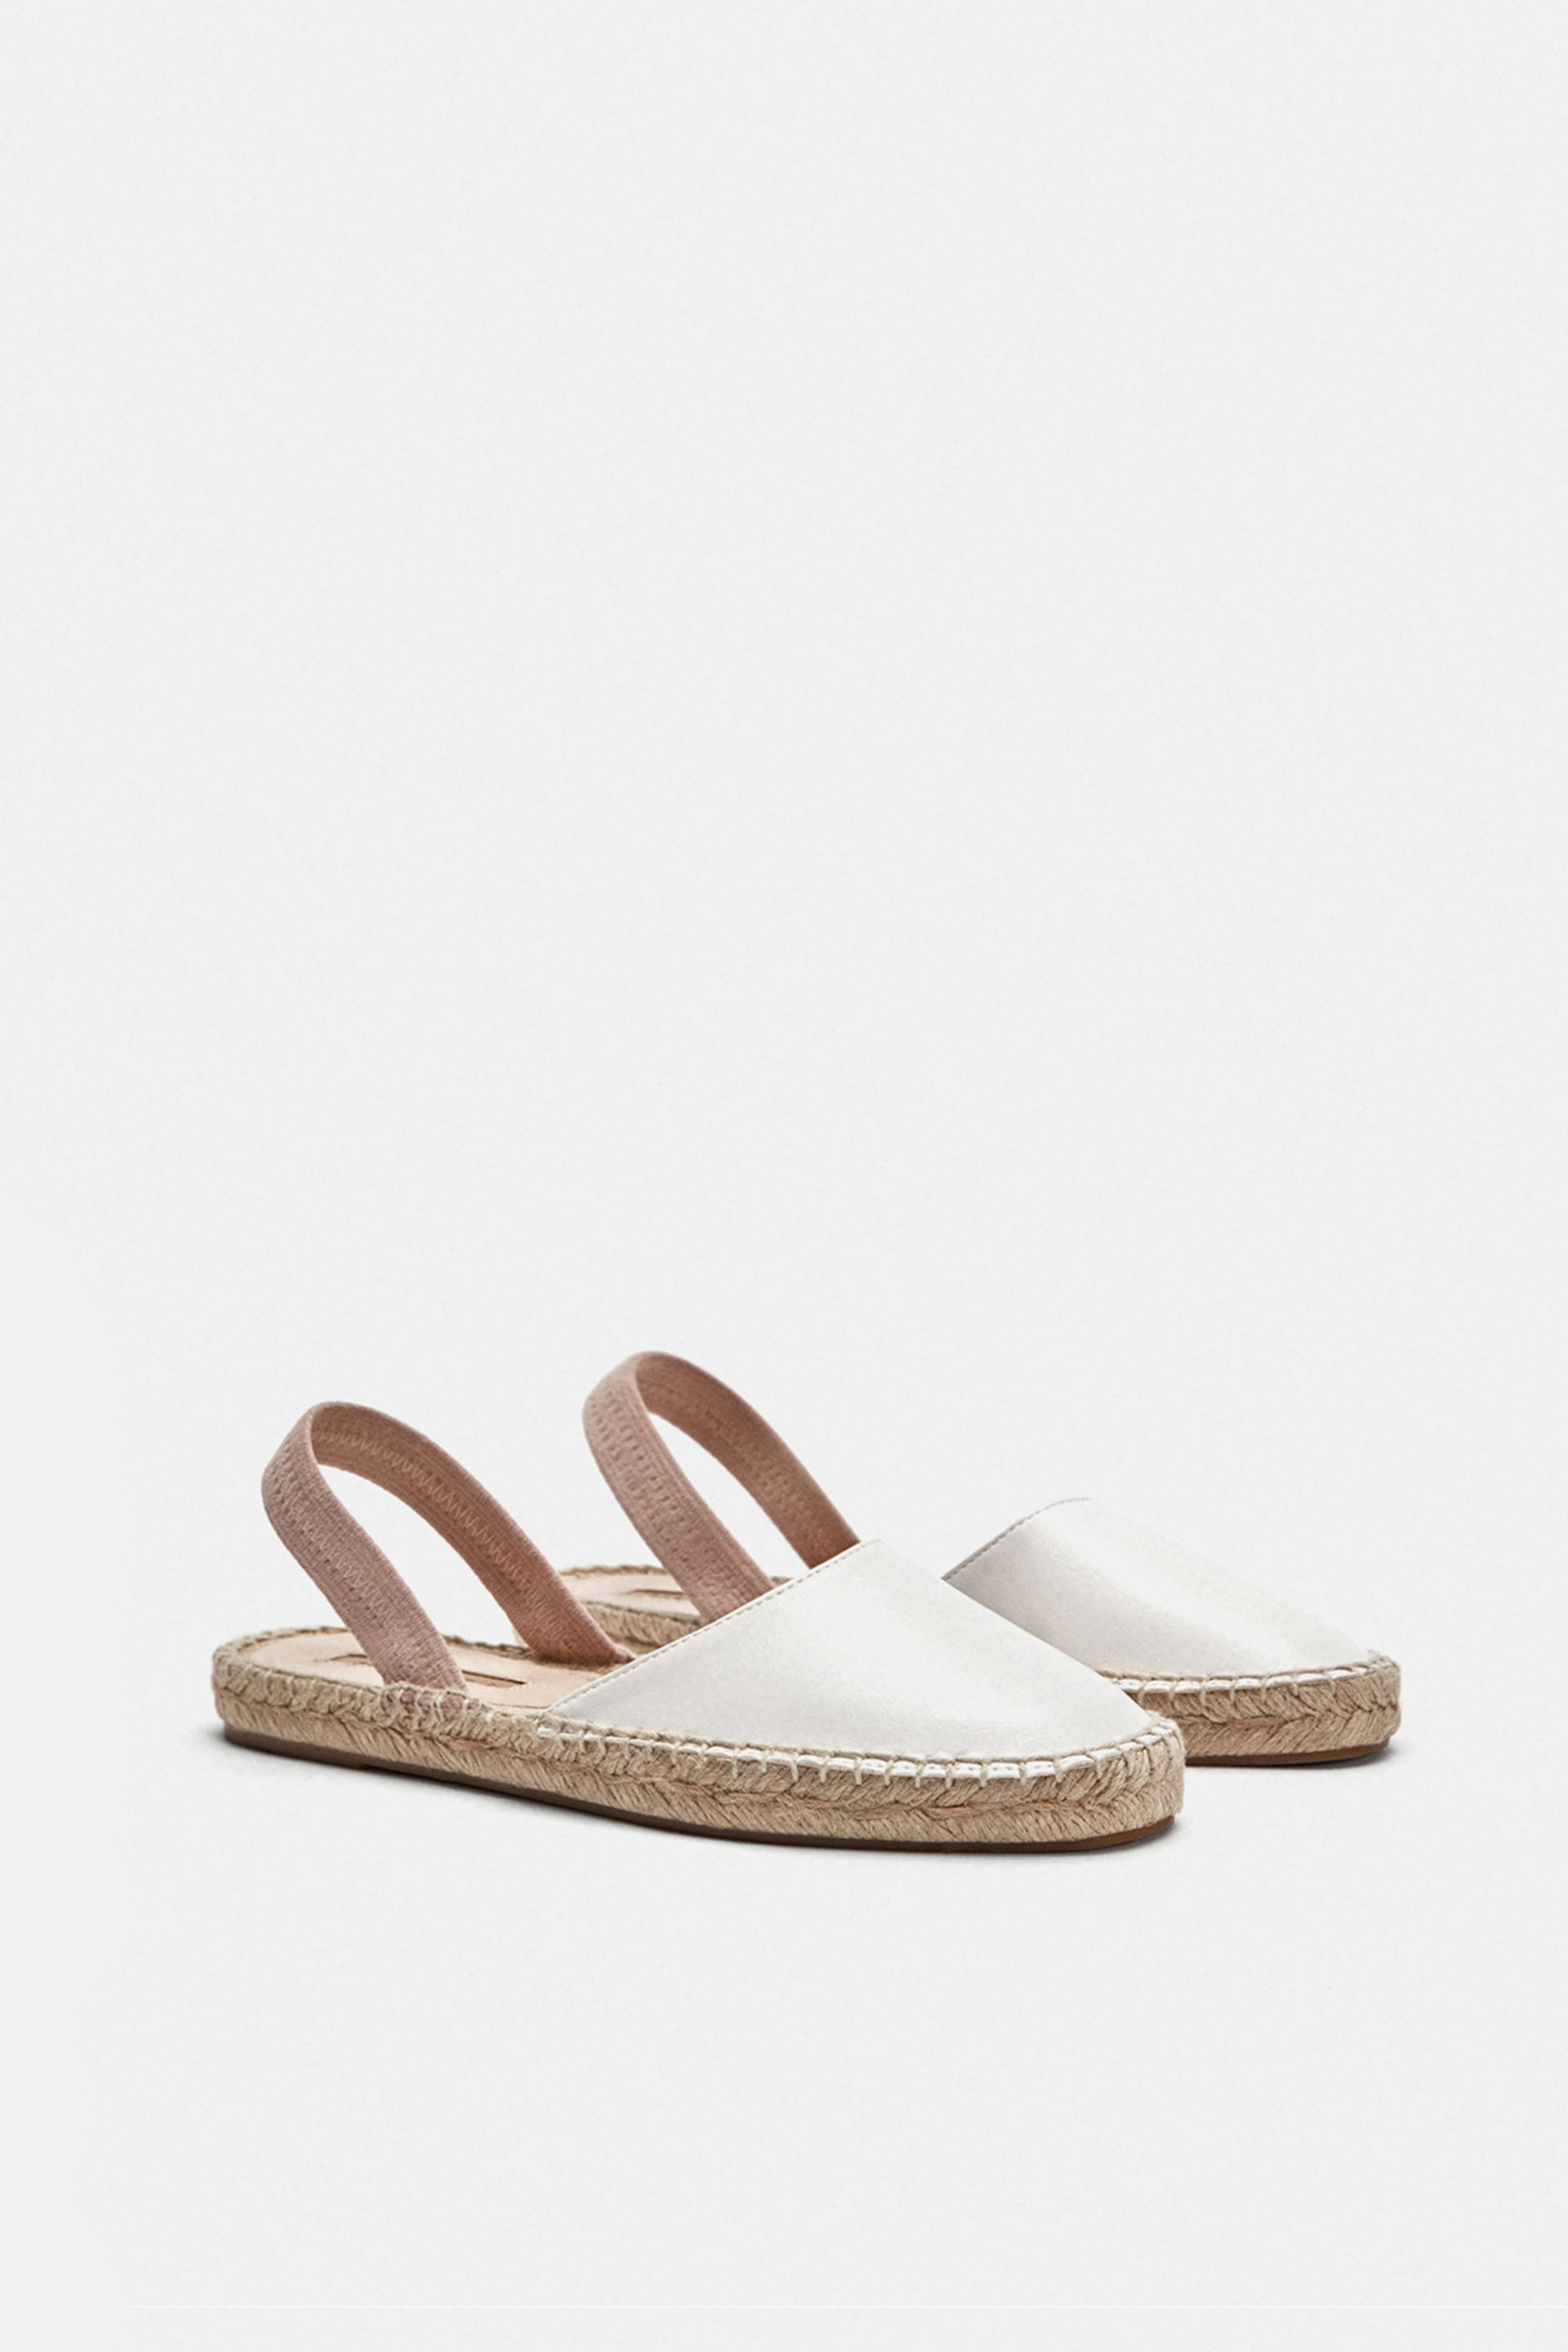 Sling Back Espadrille  View All Shoes Woman by Zara